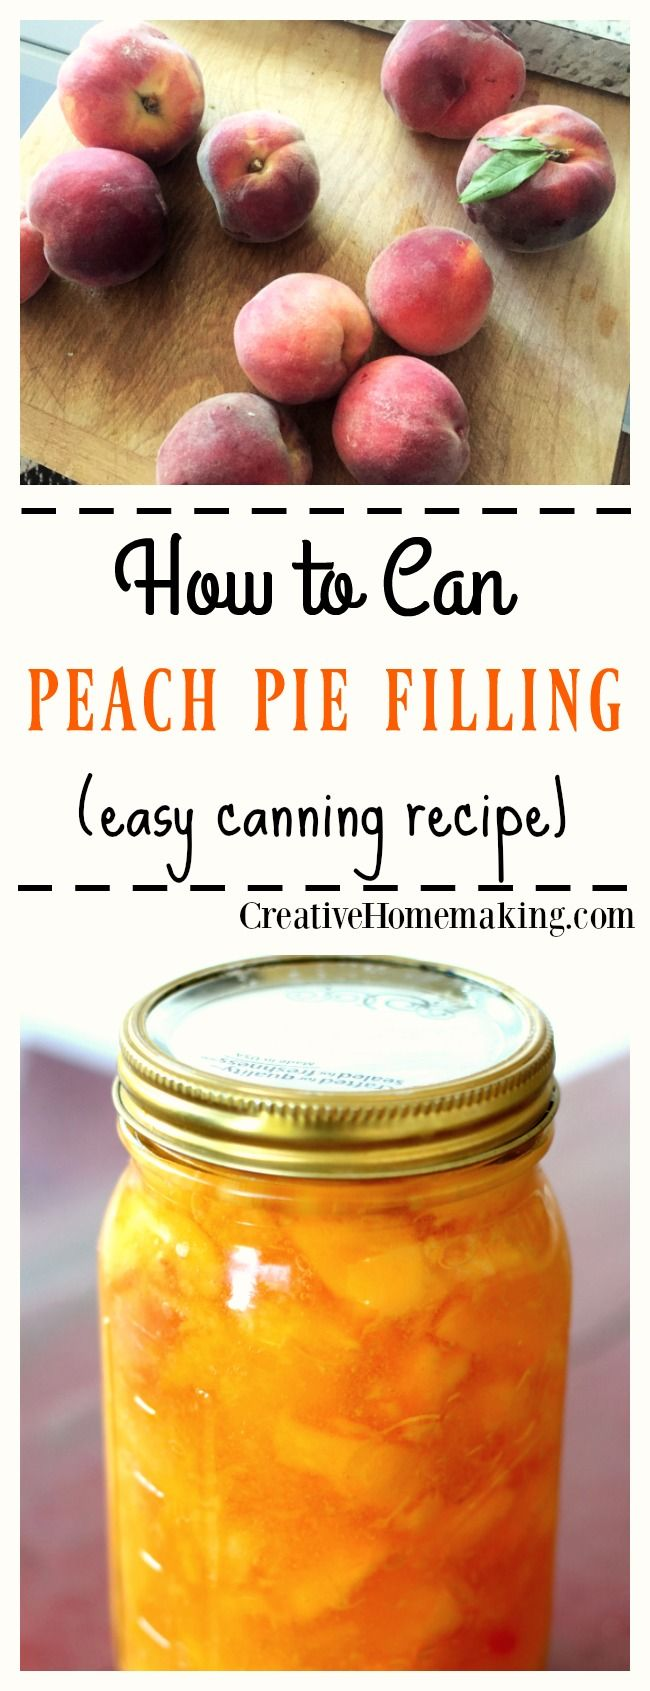 How to can homemade peach pie filling, just like grandma used to make.